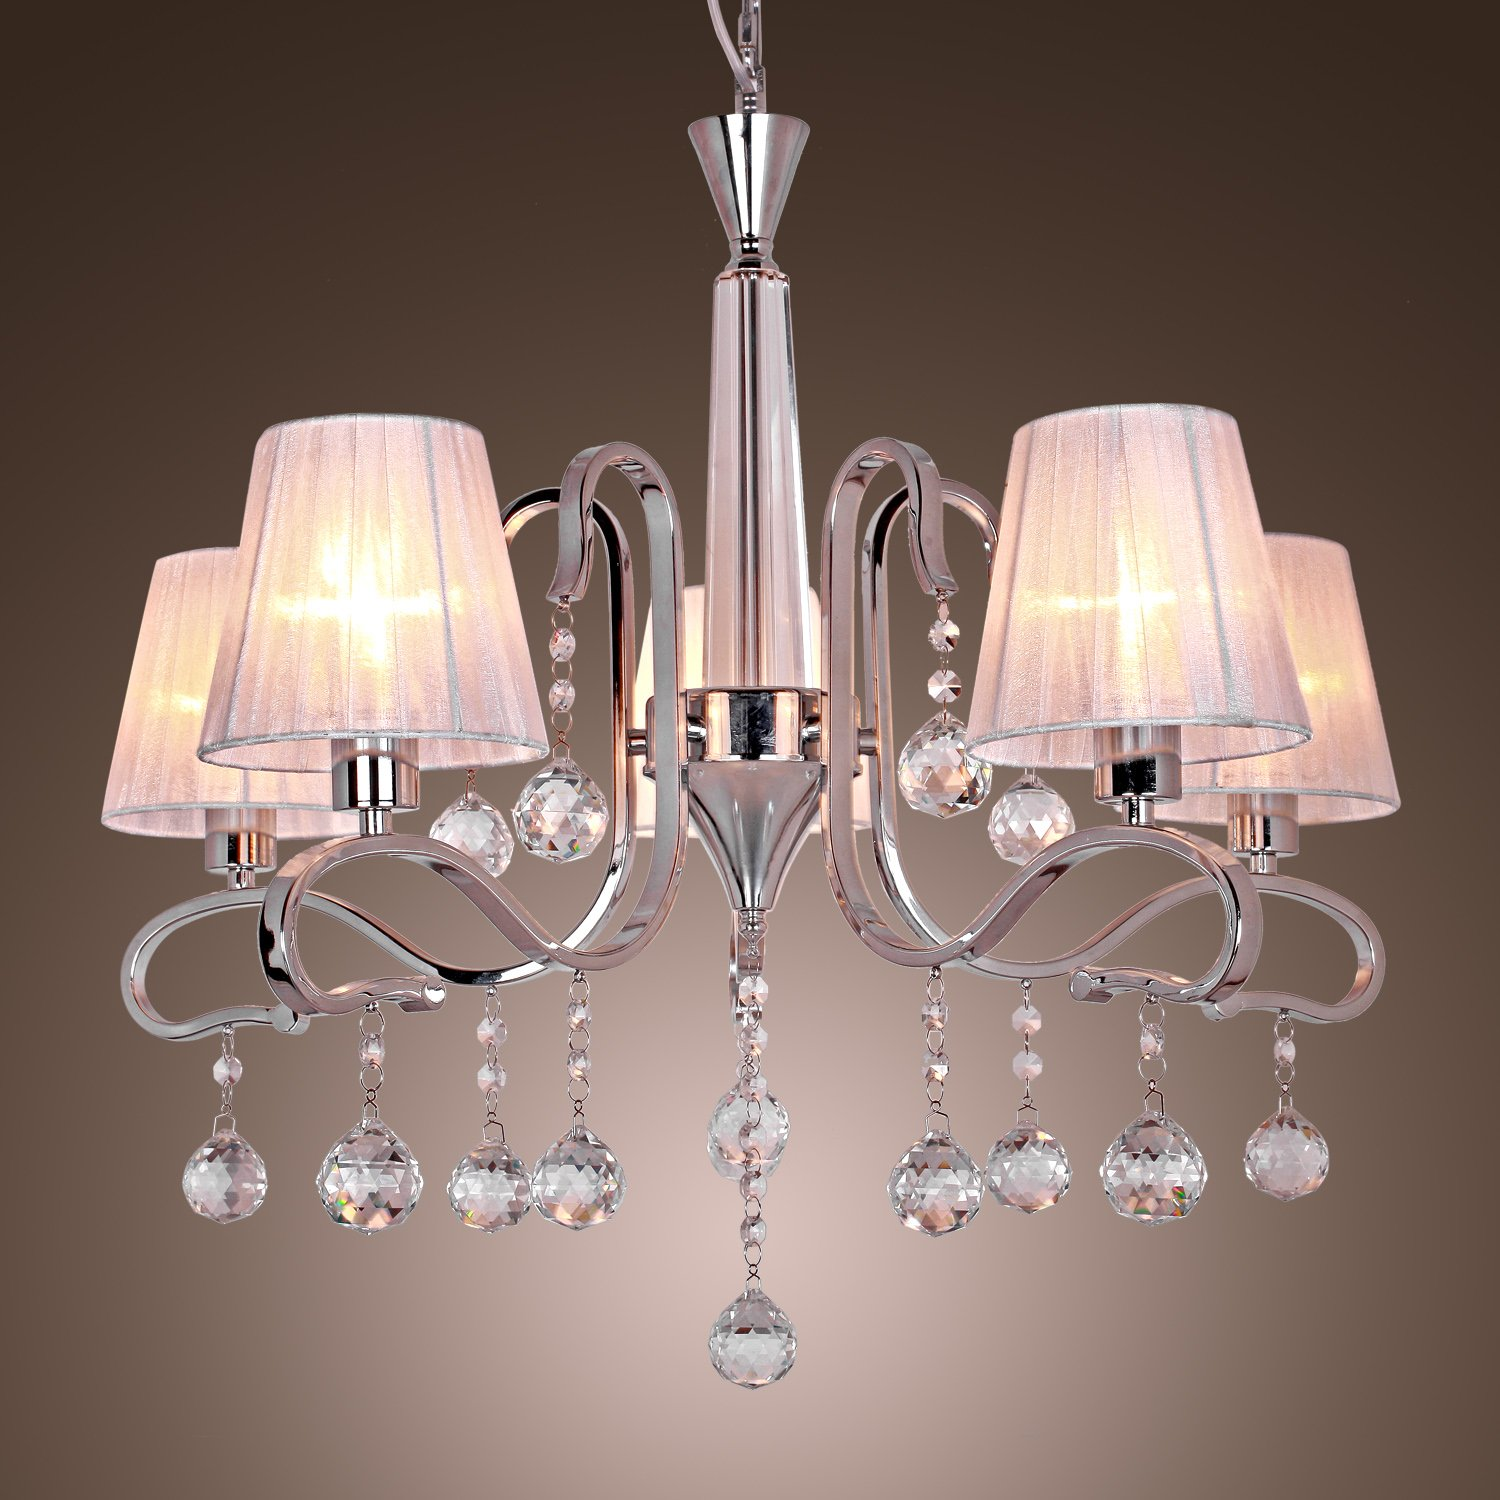 Modern Crystal Chandeliers With 5 Lights White Ceiling Light Fixture For Living Room Study Office